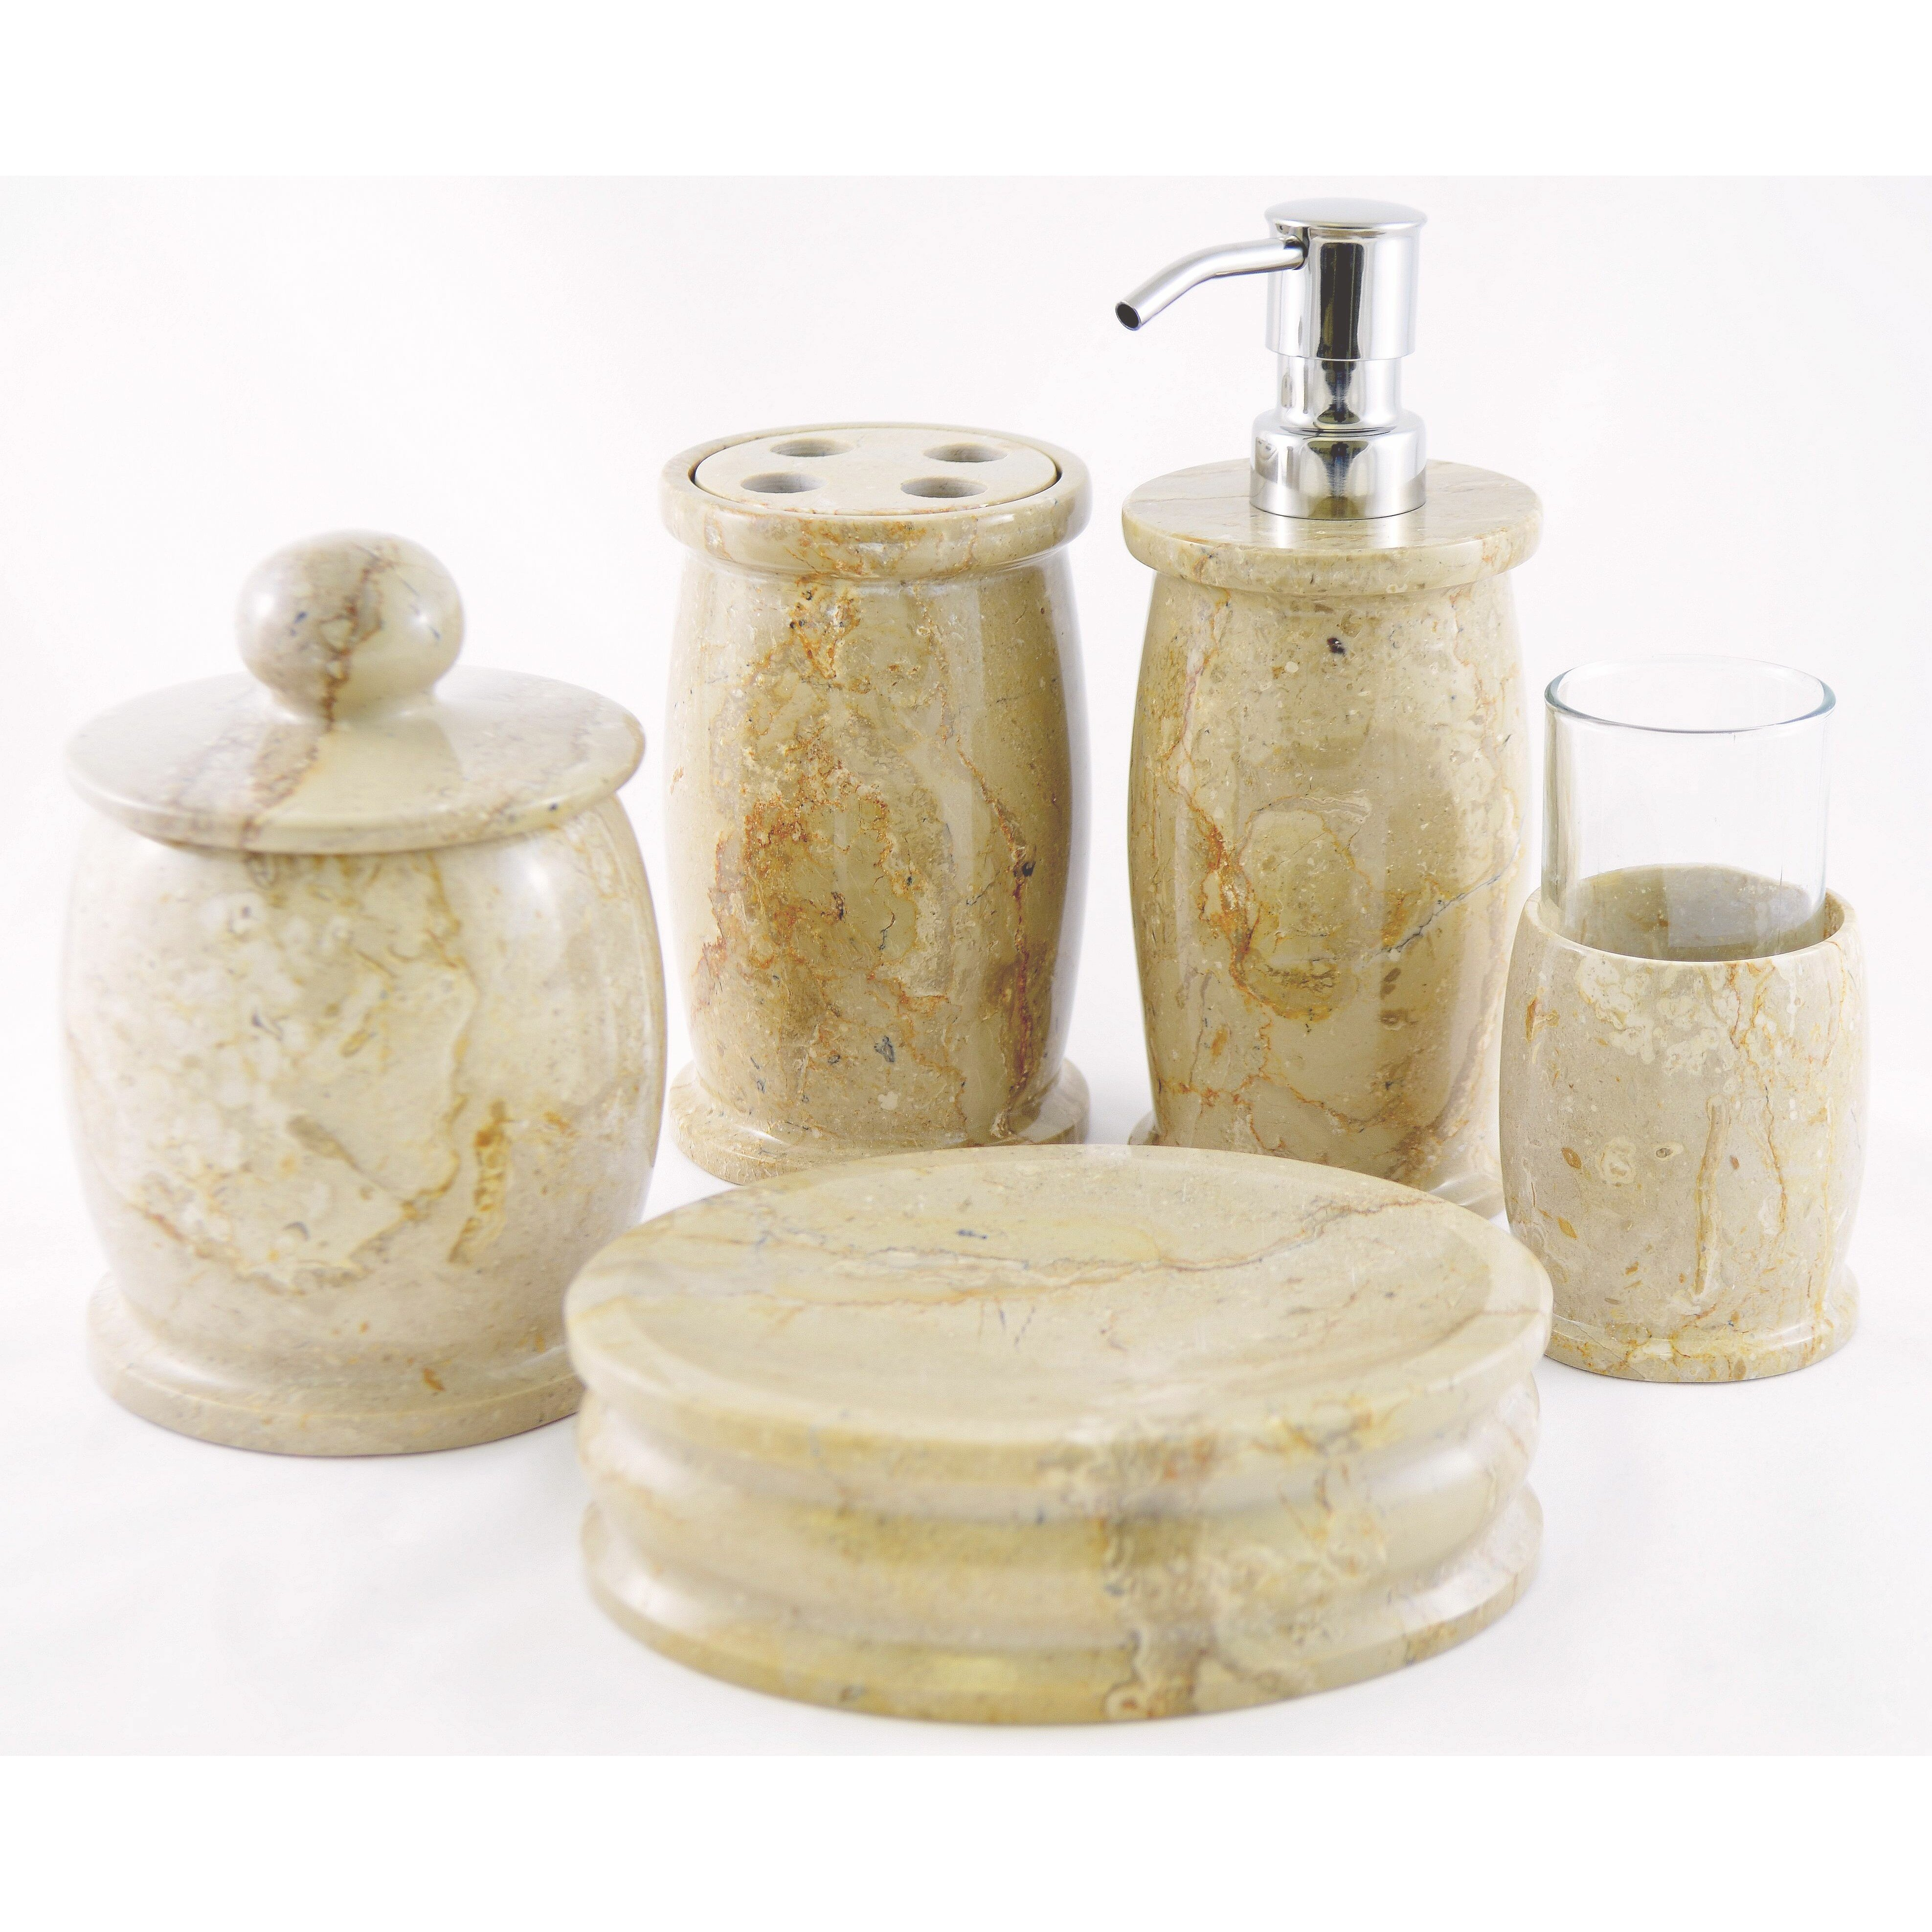 Nature home decor pacific 5 piece bathroom accessory set for Bathroom accessories set